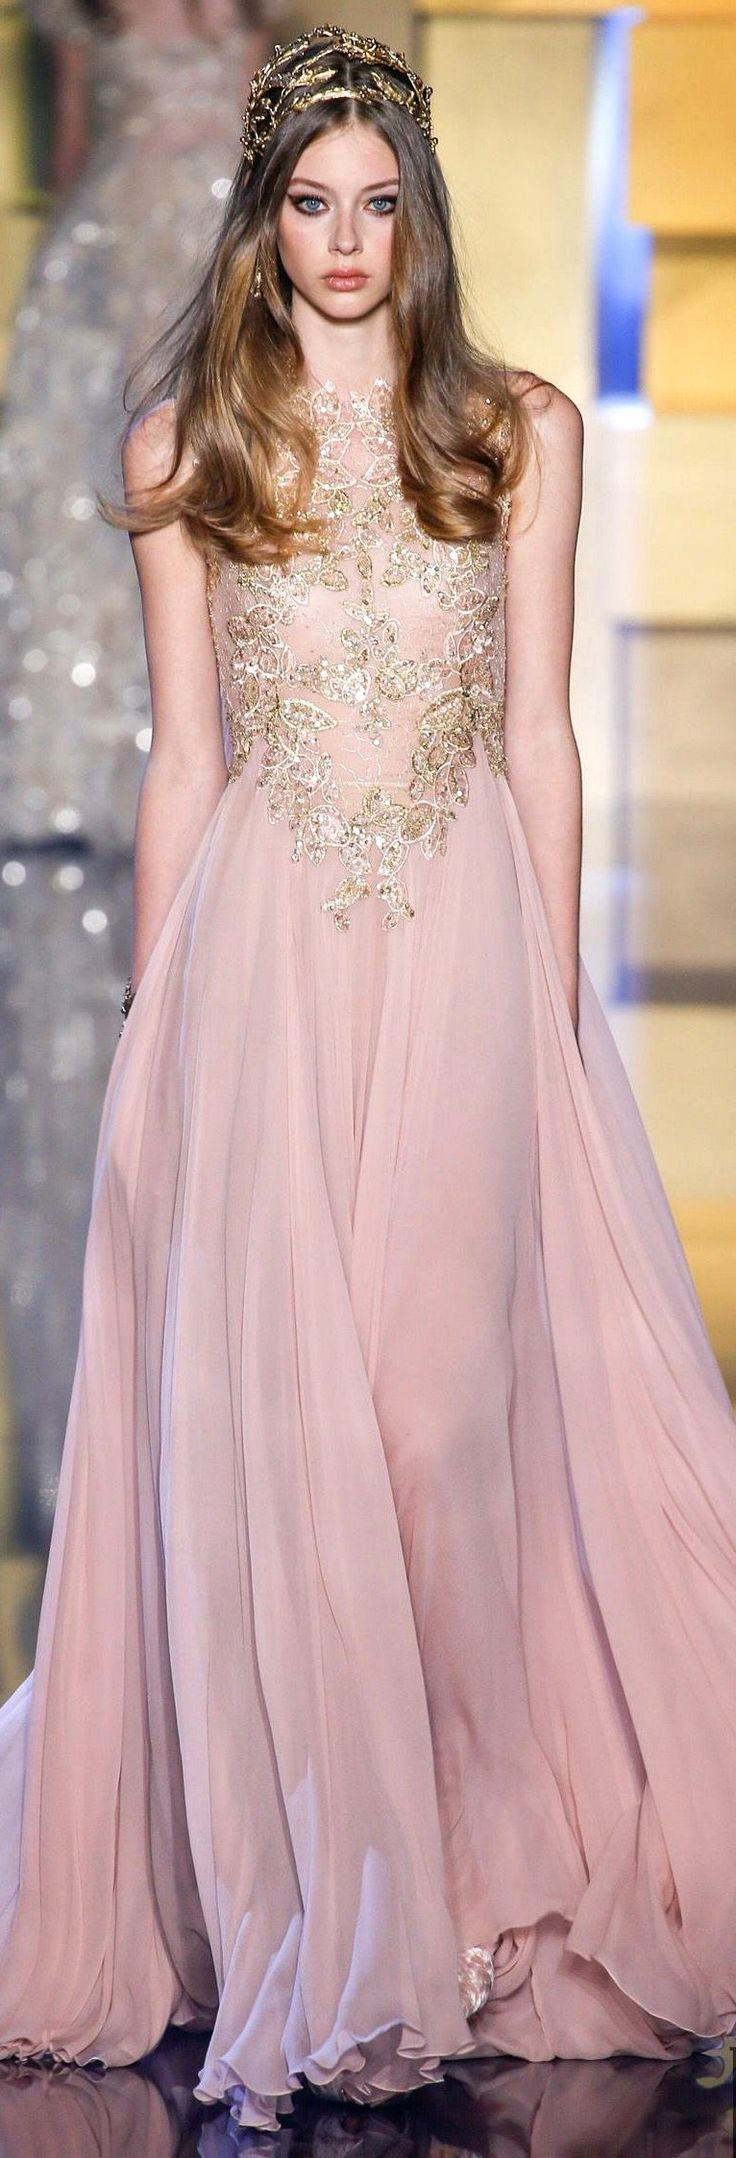 94 best moda images on Pinterest | Casual wear, Feminine fashion and ...